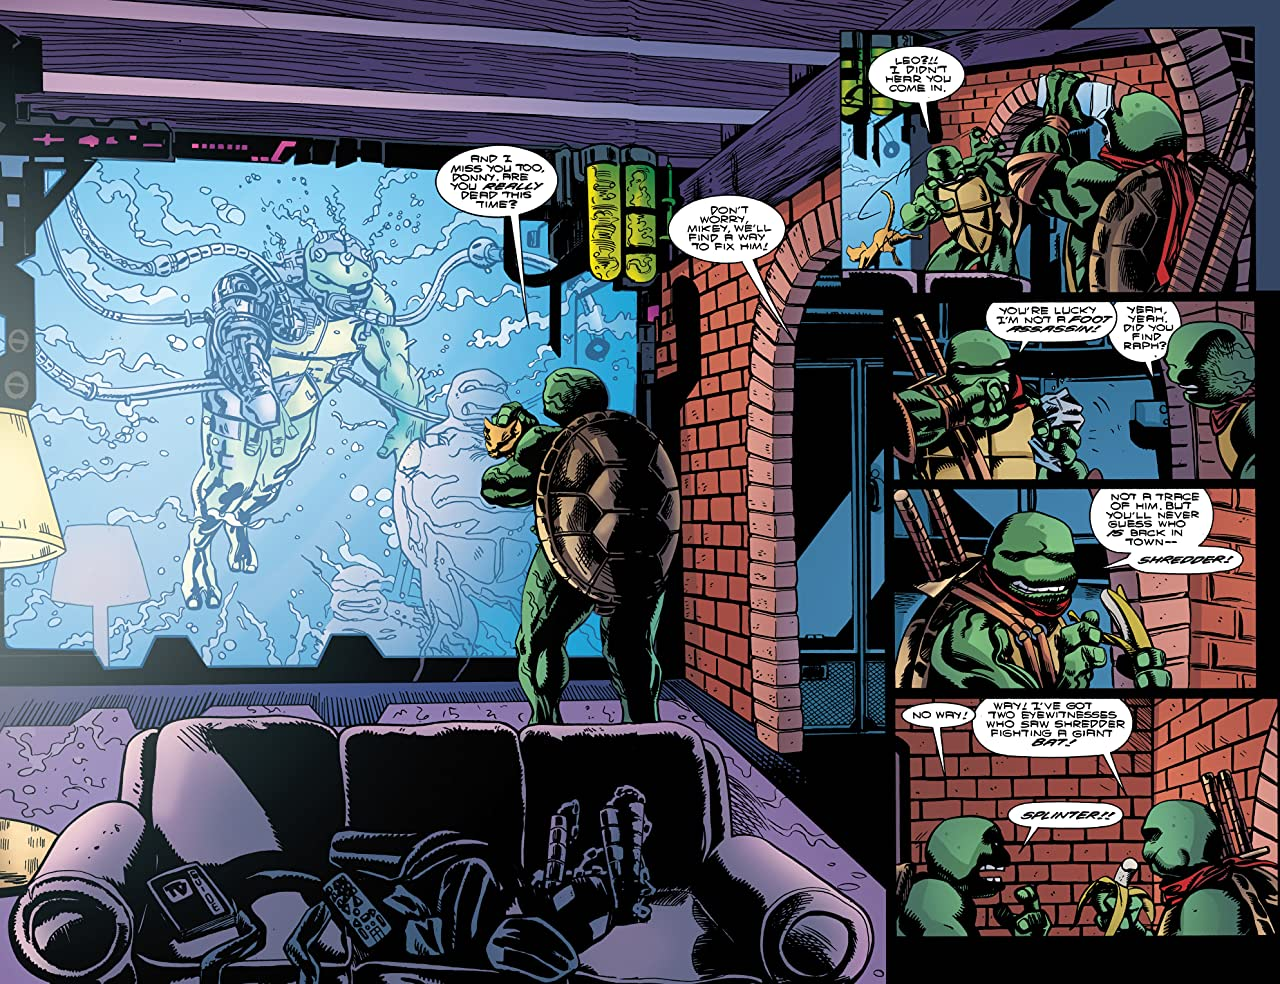 Teenage Mutant Ninja Turtles: Urban Legends #15